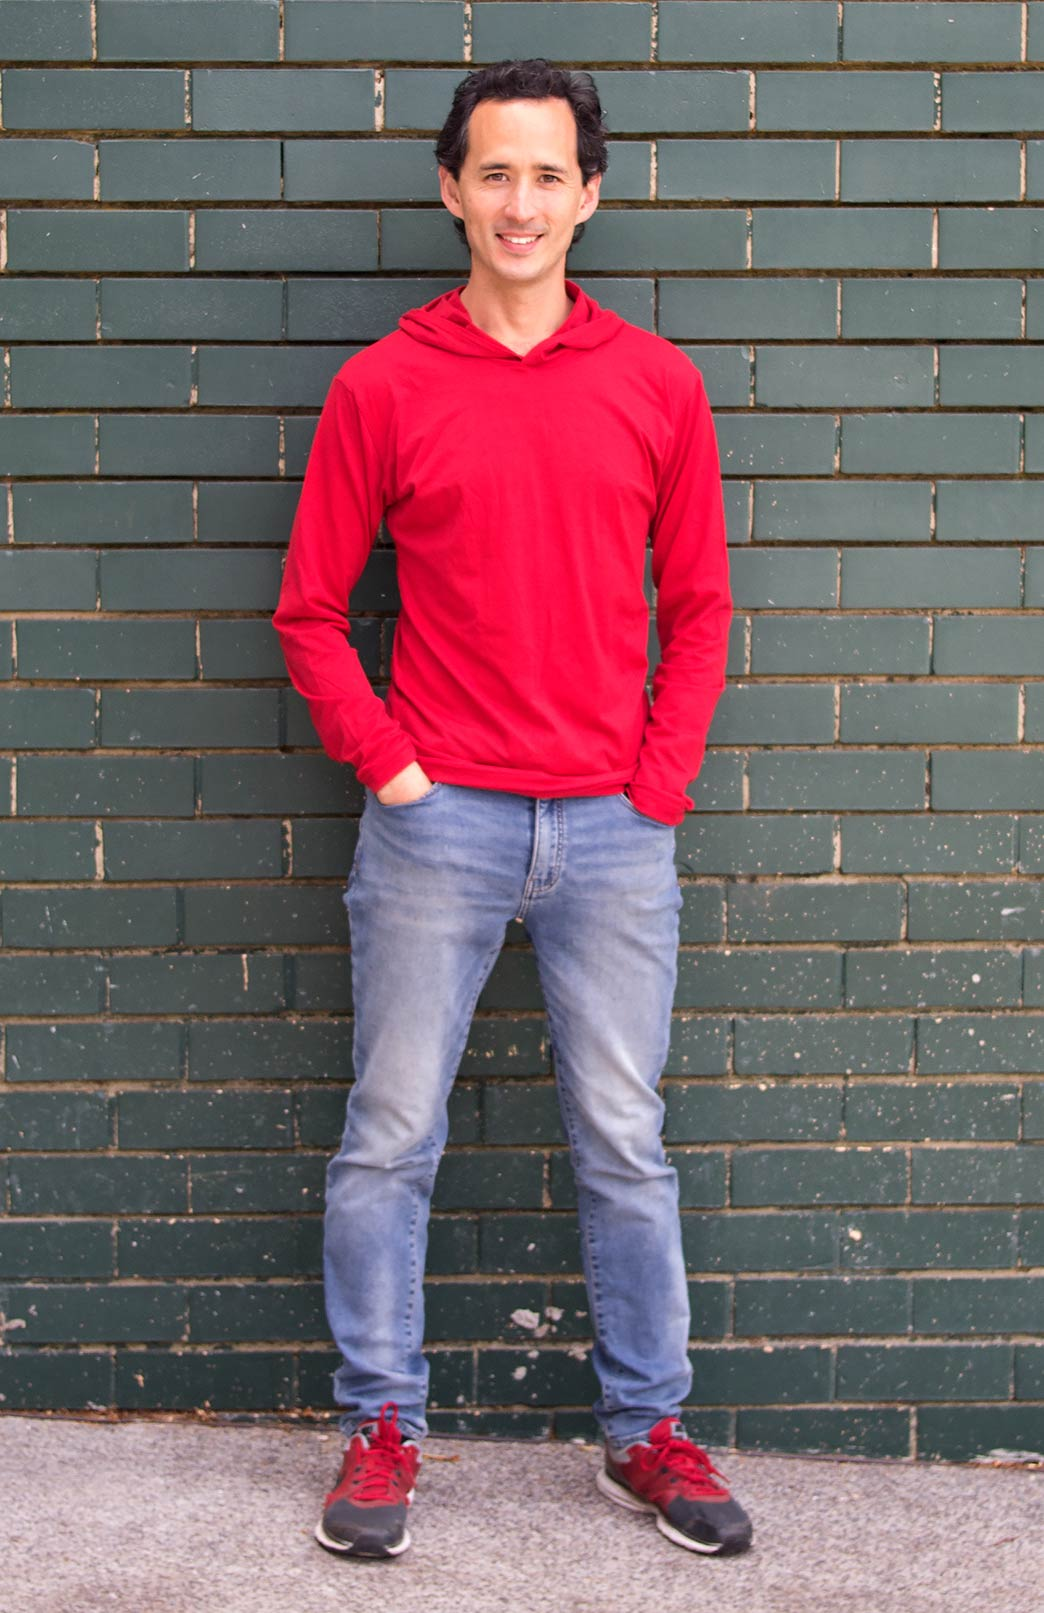 Crew Neck Hoody (~200g) - Men's Lightweight 200g Flame Red Wool Long Sleeved Crew Neck Top with hood - Smitten Merino Tasmania Australia